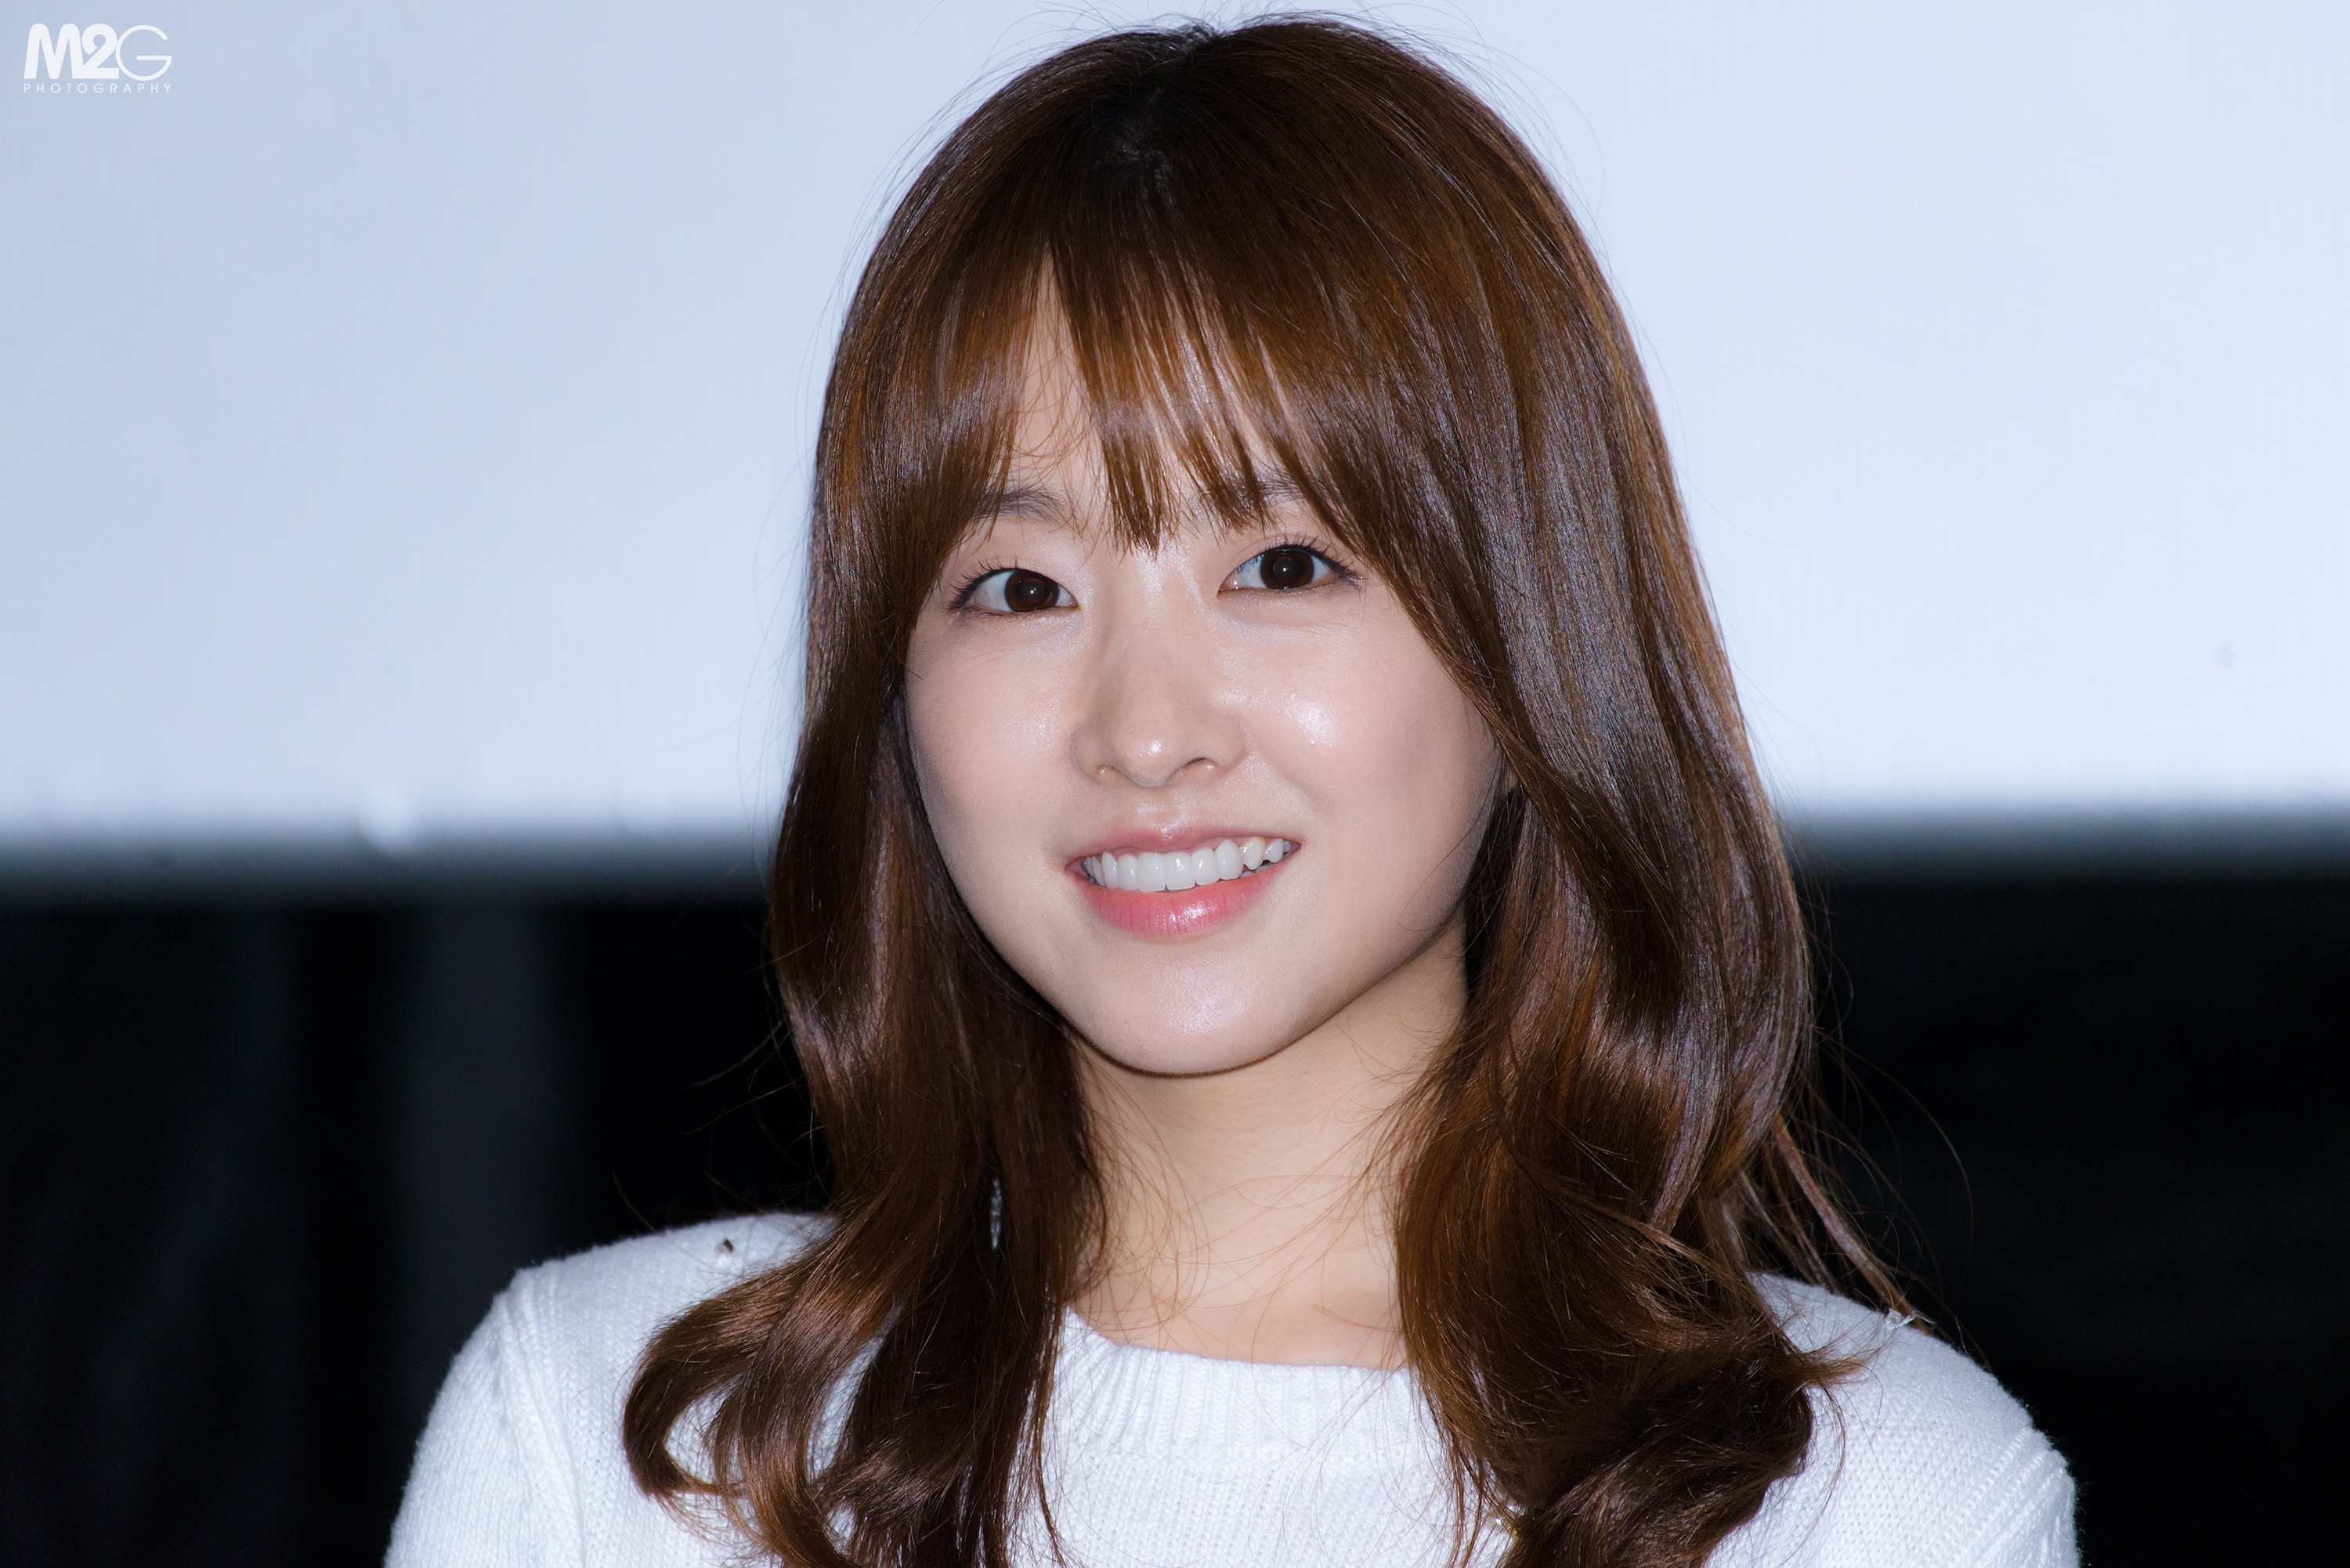 Park Bo Young Believes Her Popularity Is Going Down